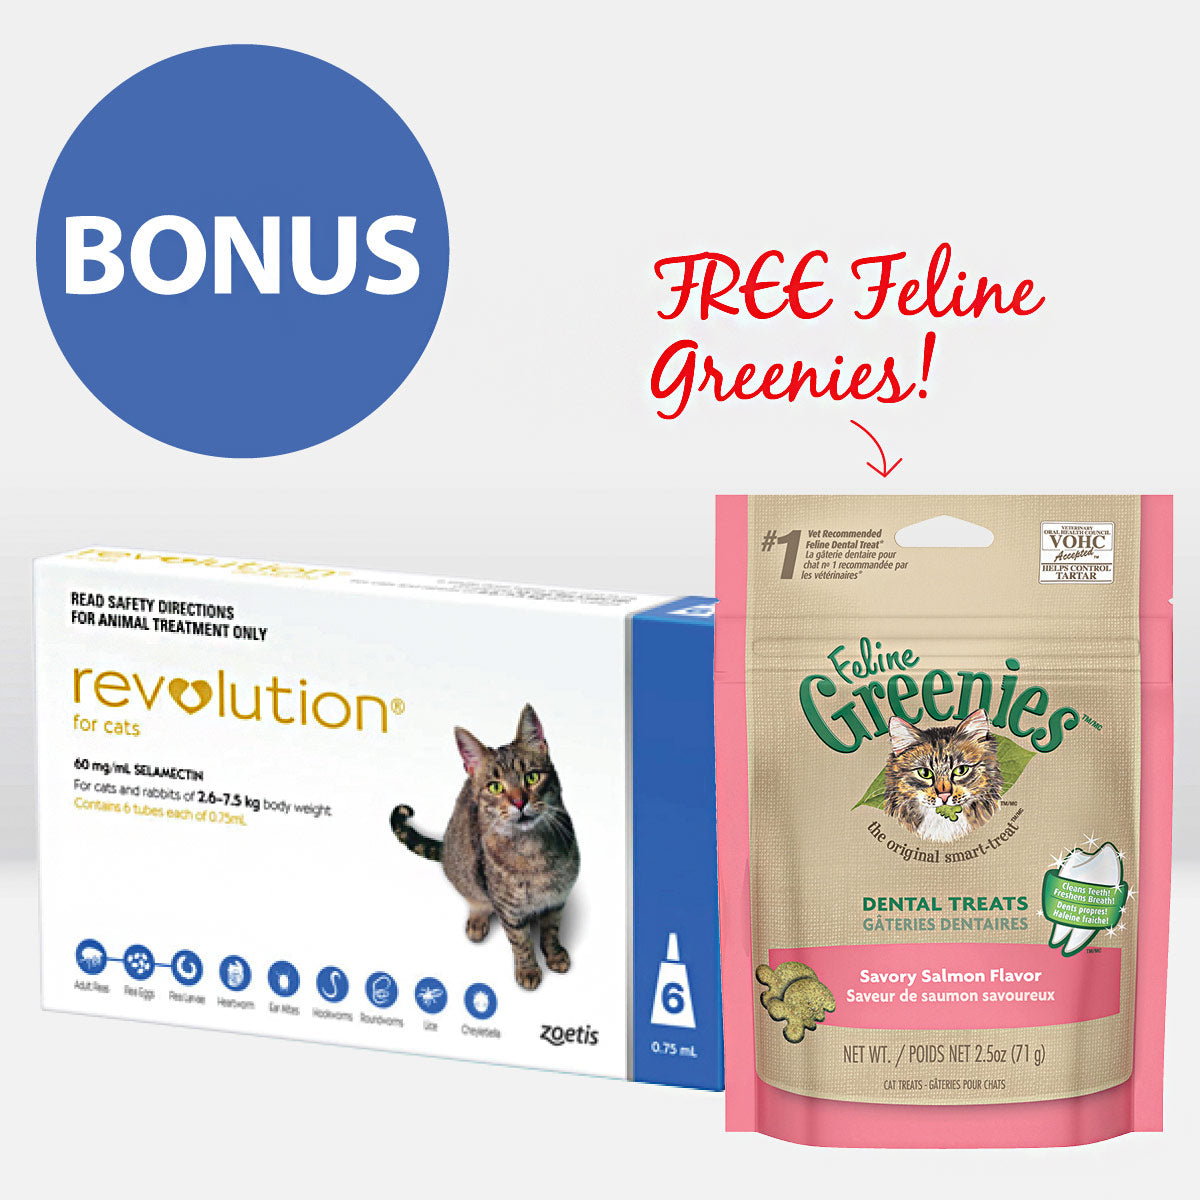 Revolution for Cats + FREE GREENIES